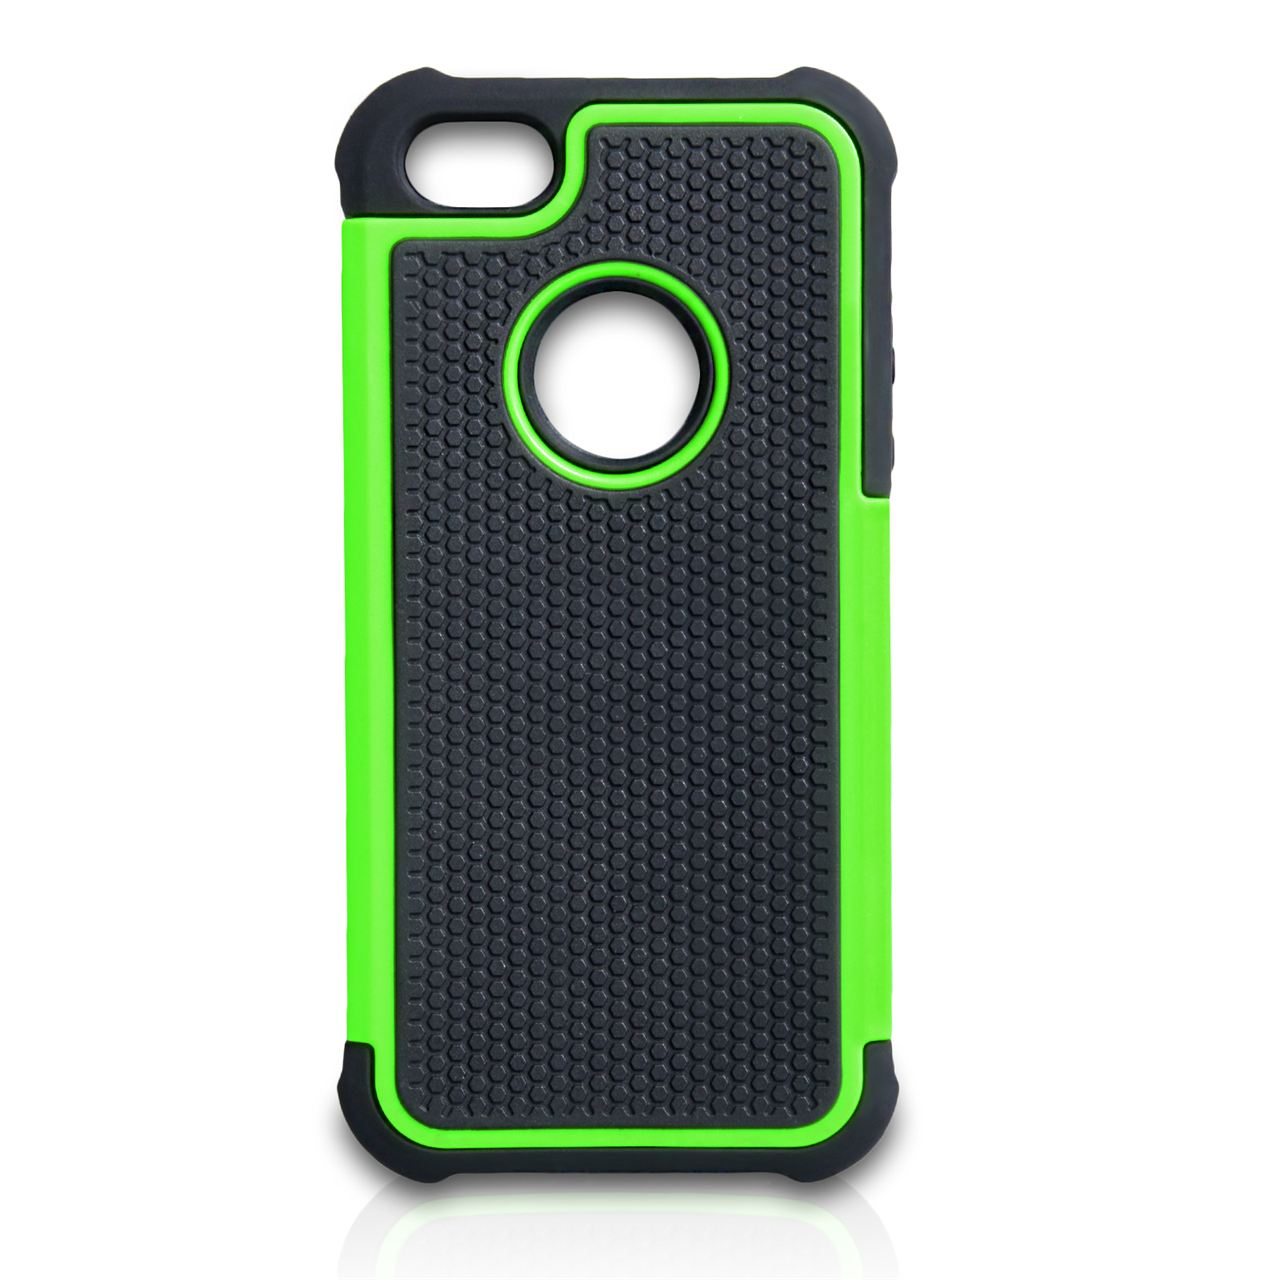 official photos 99bac 4d9a0 Yousave Accessories Iphone SE Grip Combo Case - Green